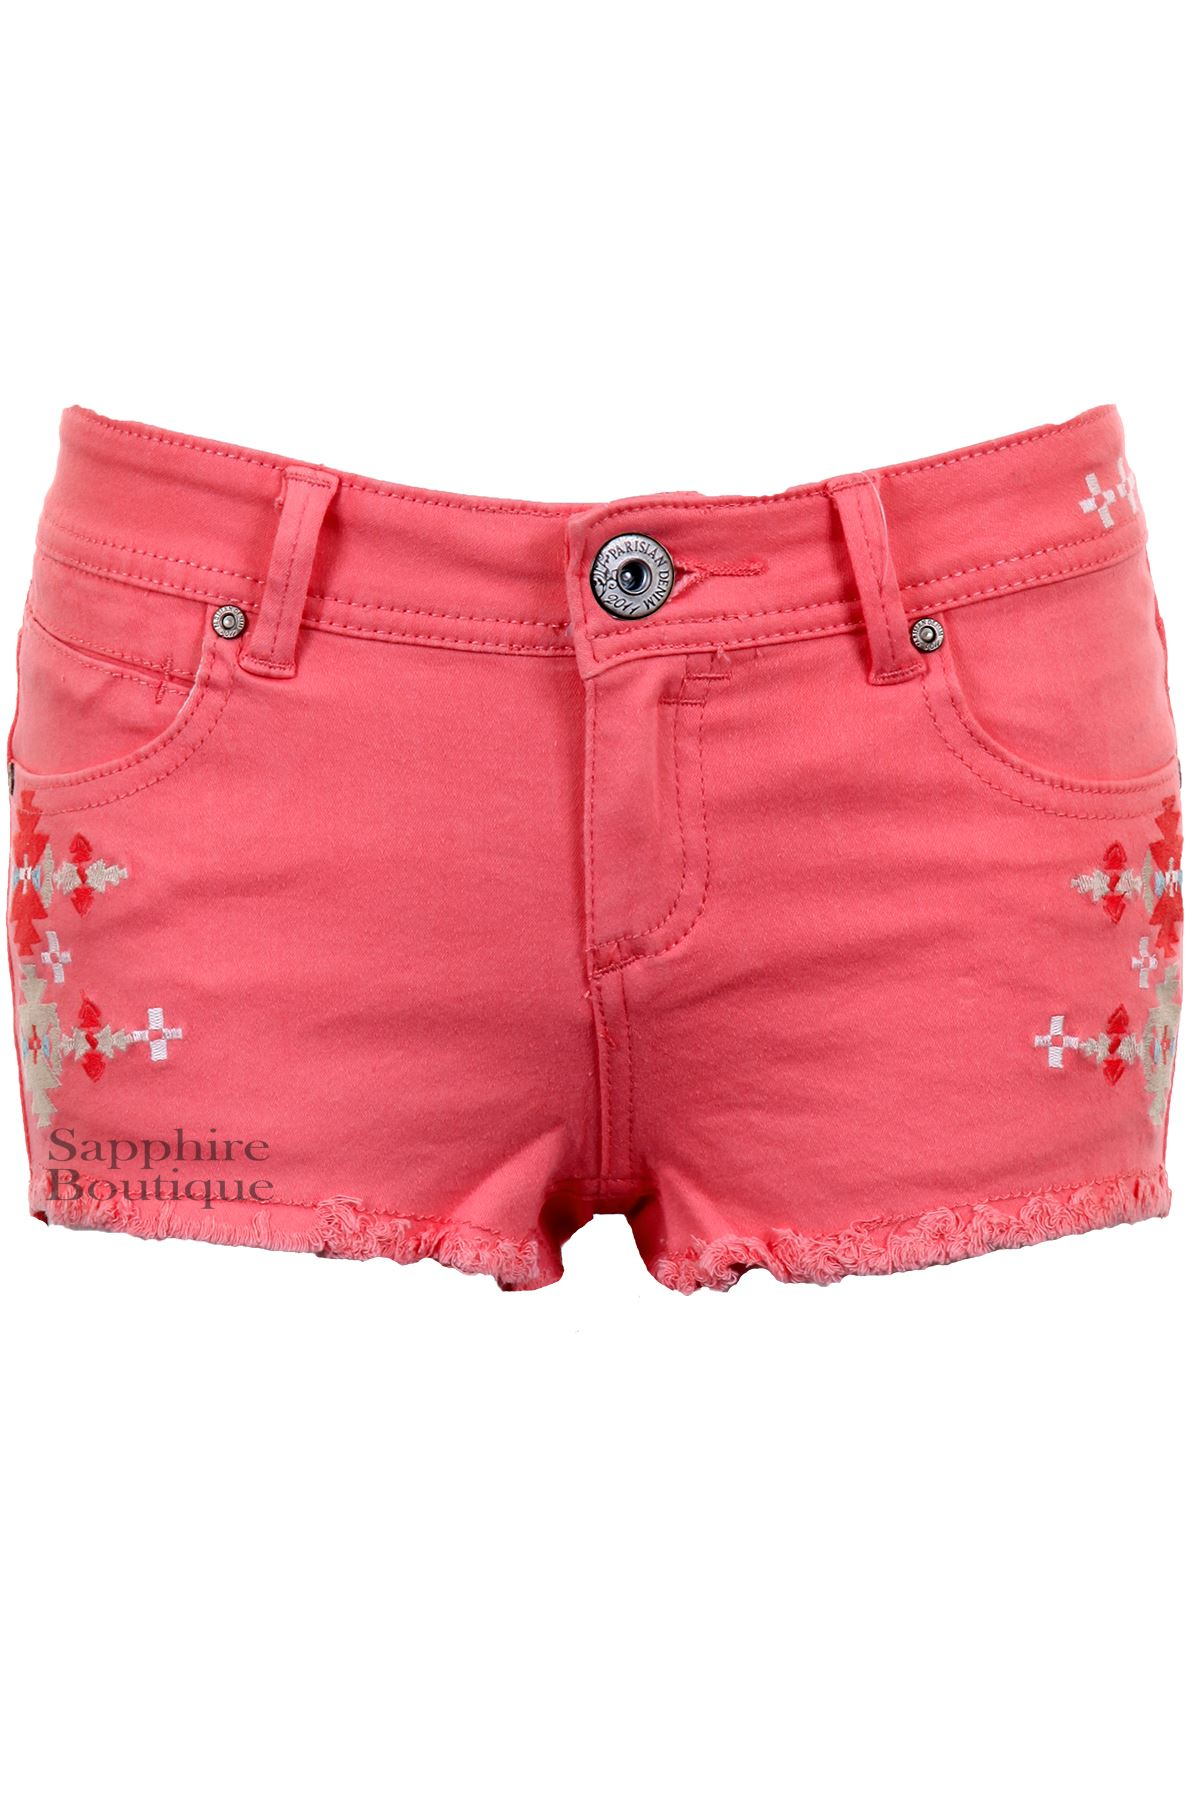 Womens-Pastel-Coloured-Aztec-Denim-Summer-Fitted-Hot-Pants-Shorts-Jeans-6-14